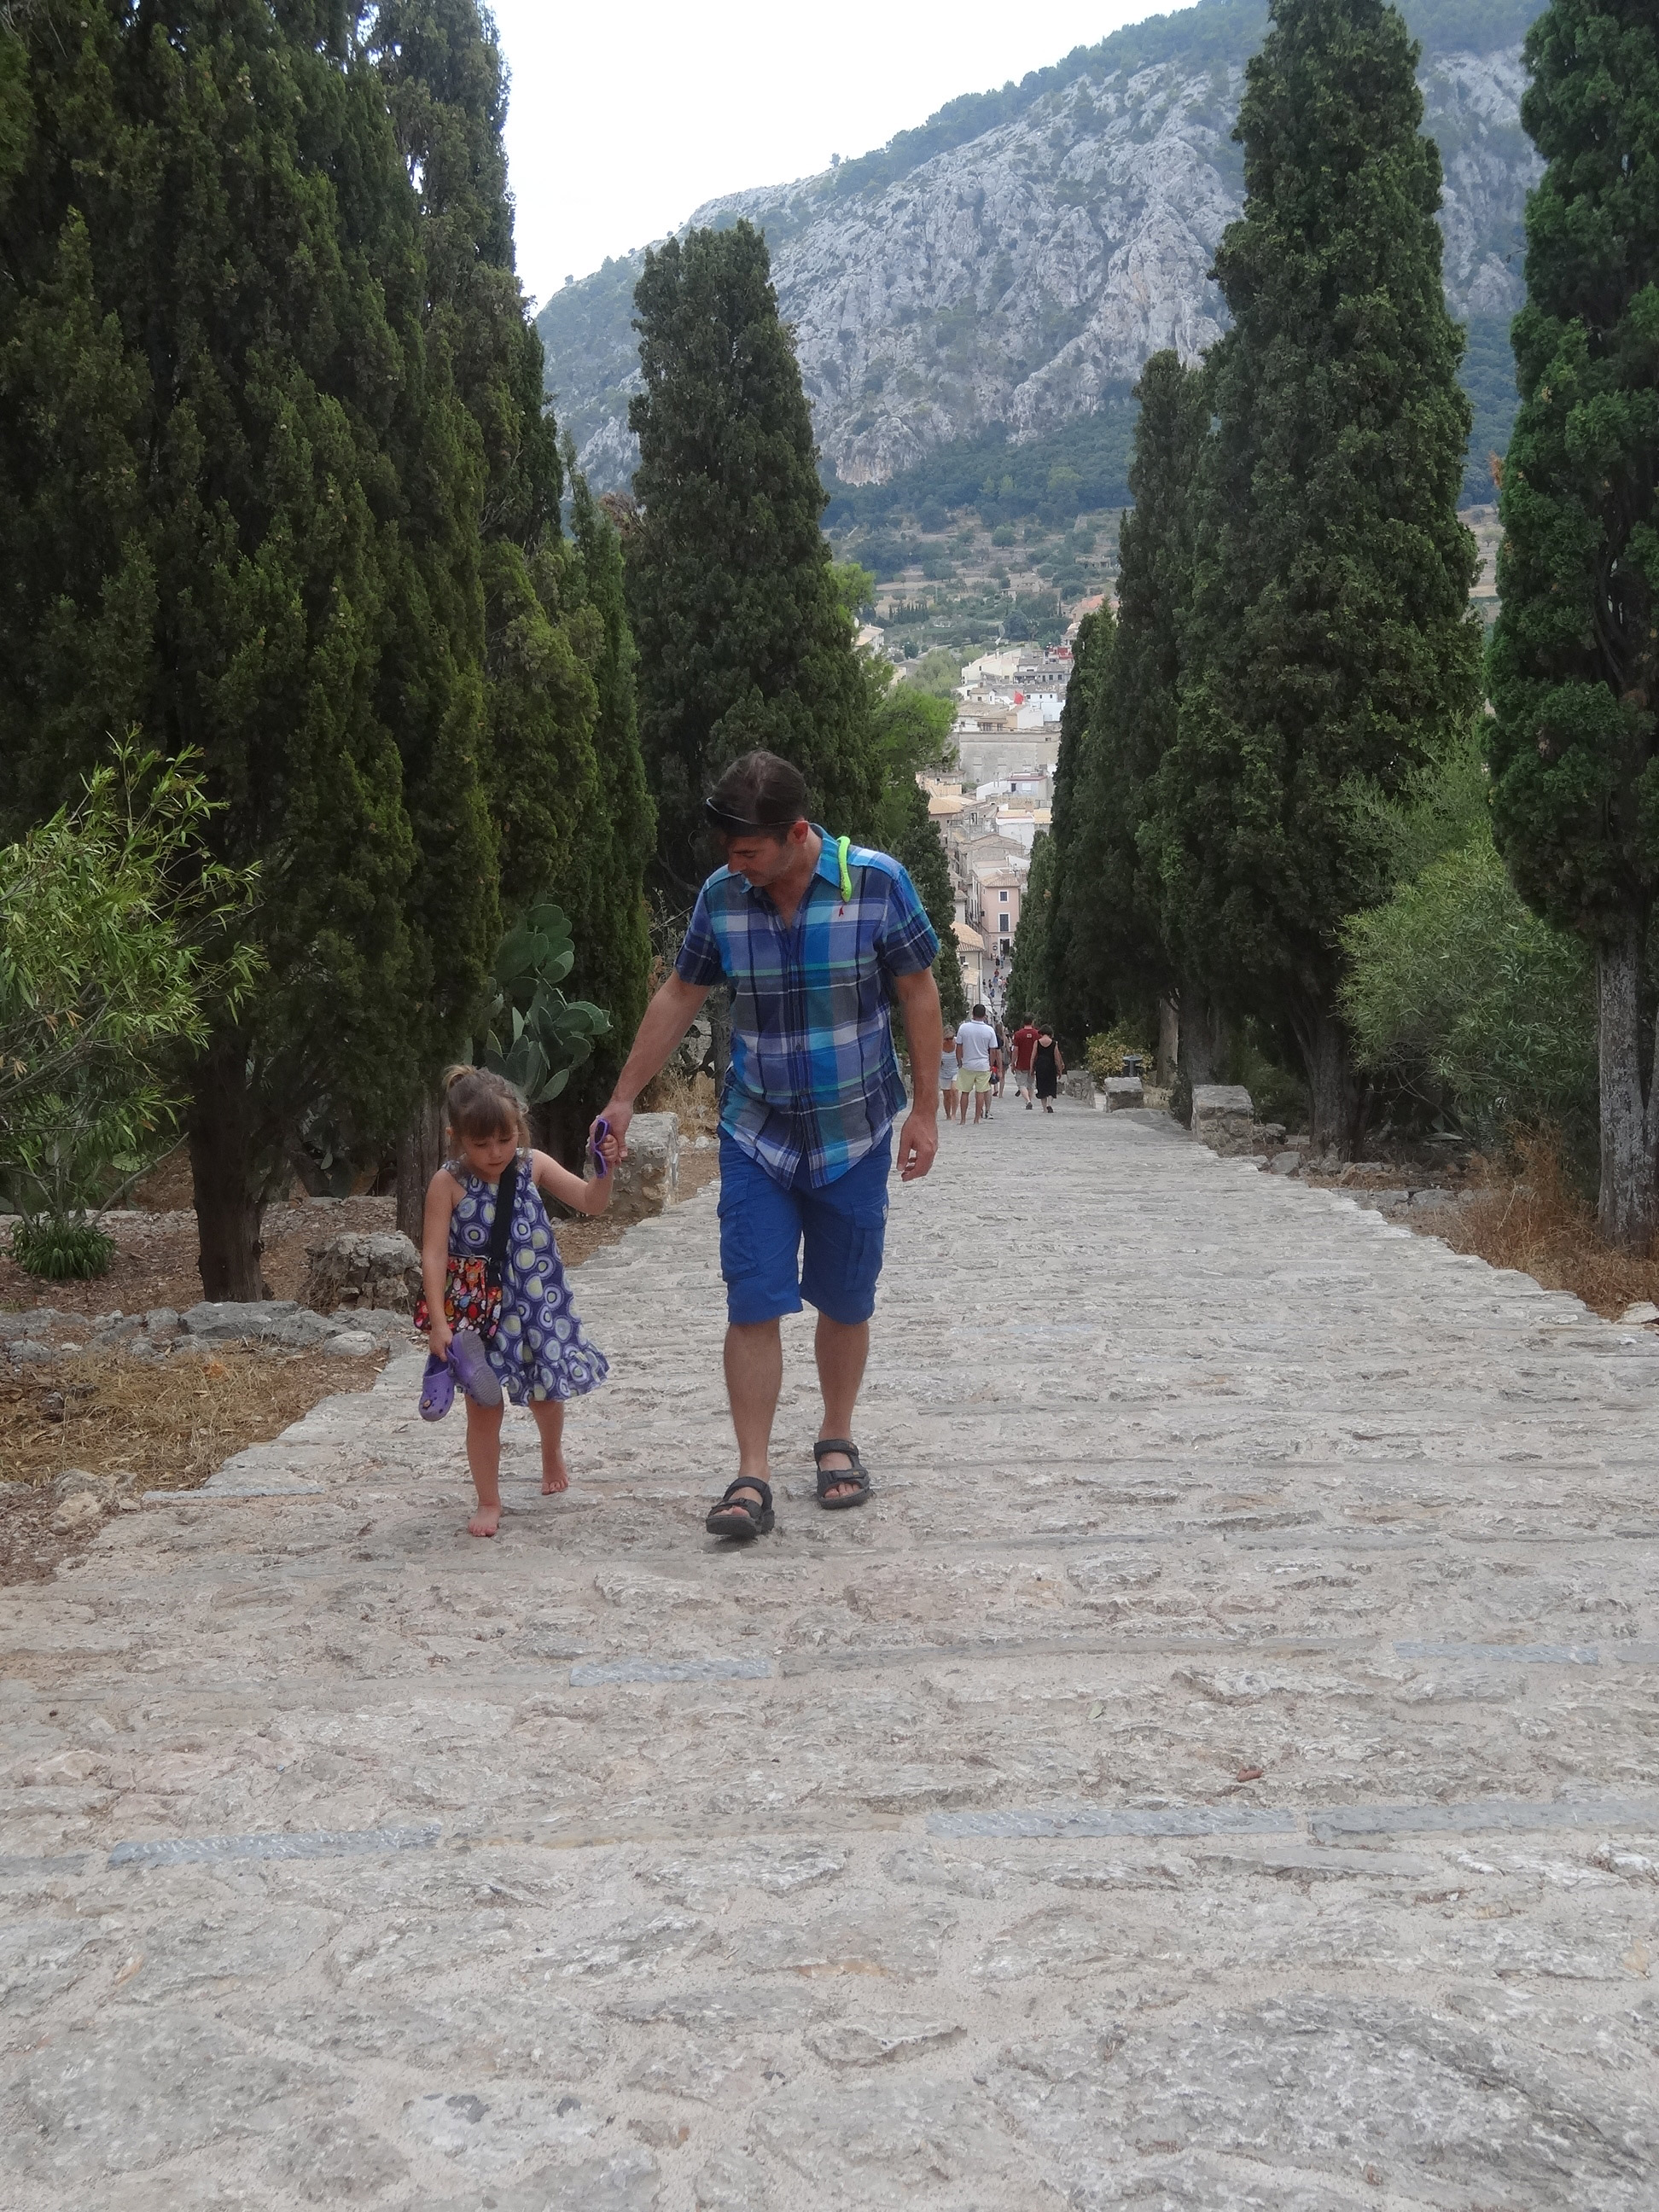 Walking up the steps in Pollensa